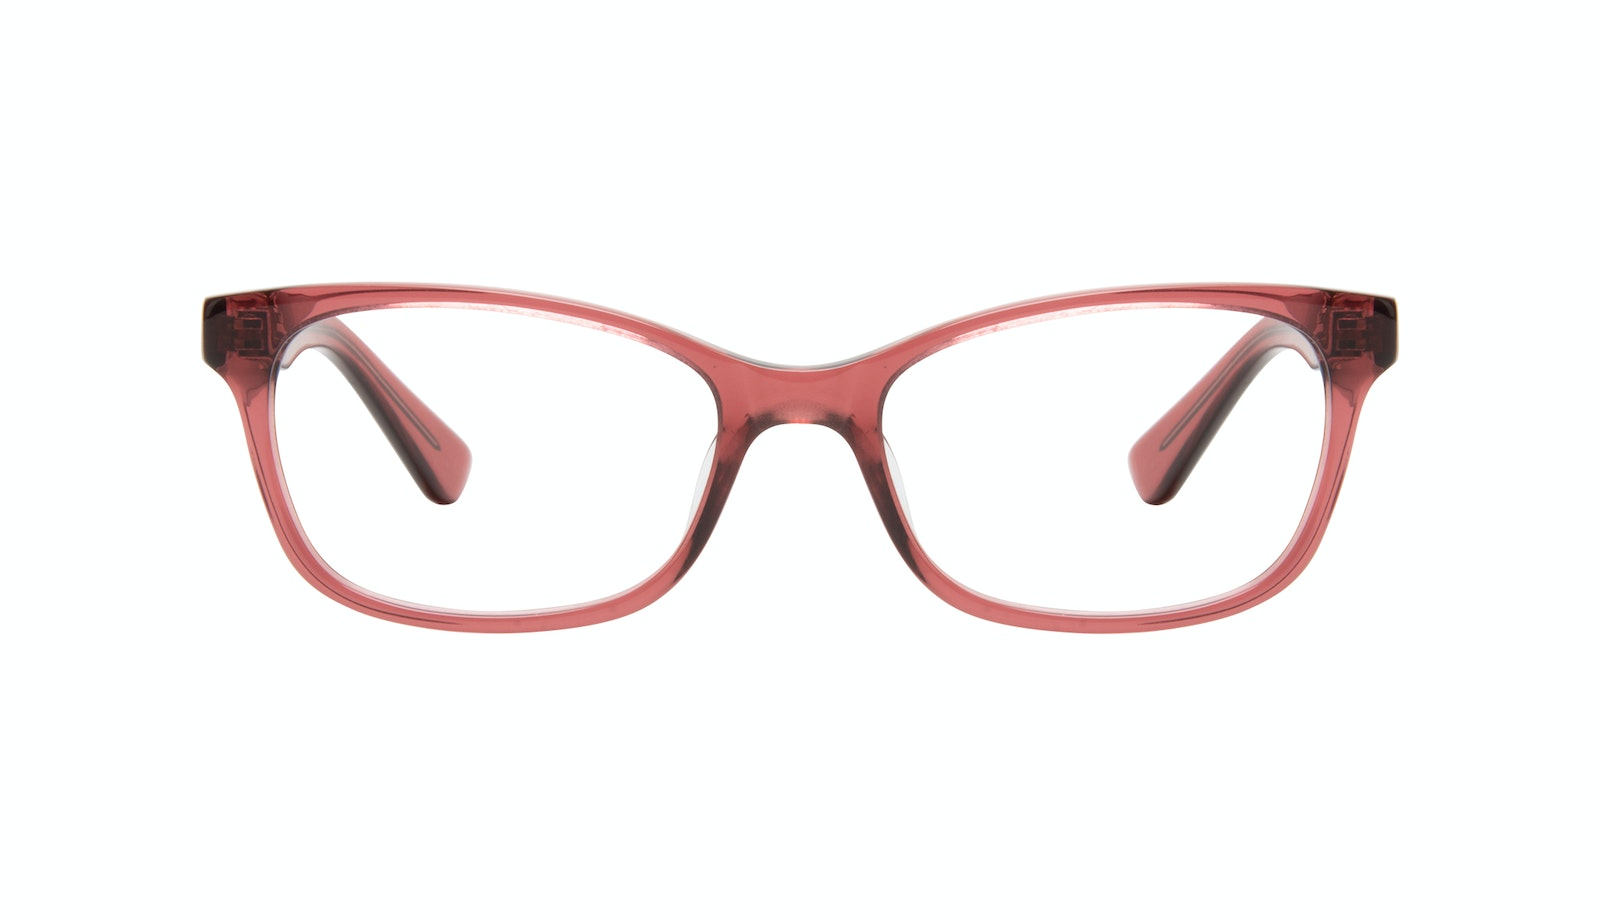 Affordable Fashion Glasses Cat Eye Rectangle Square Eyeglasses Women Comet Cherry